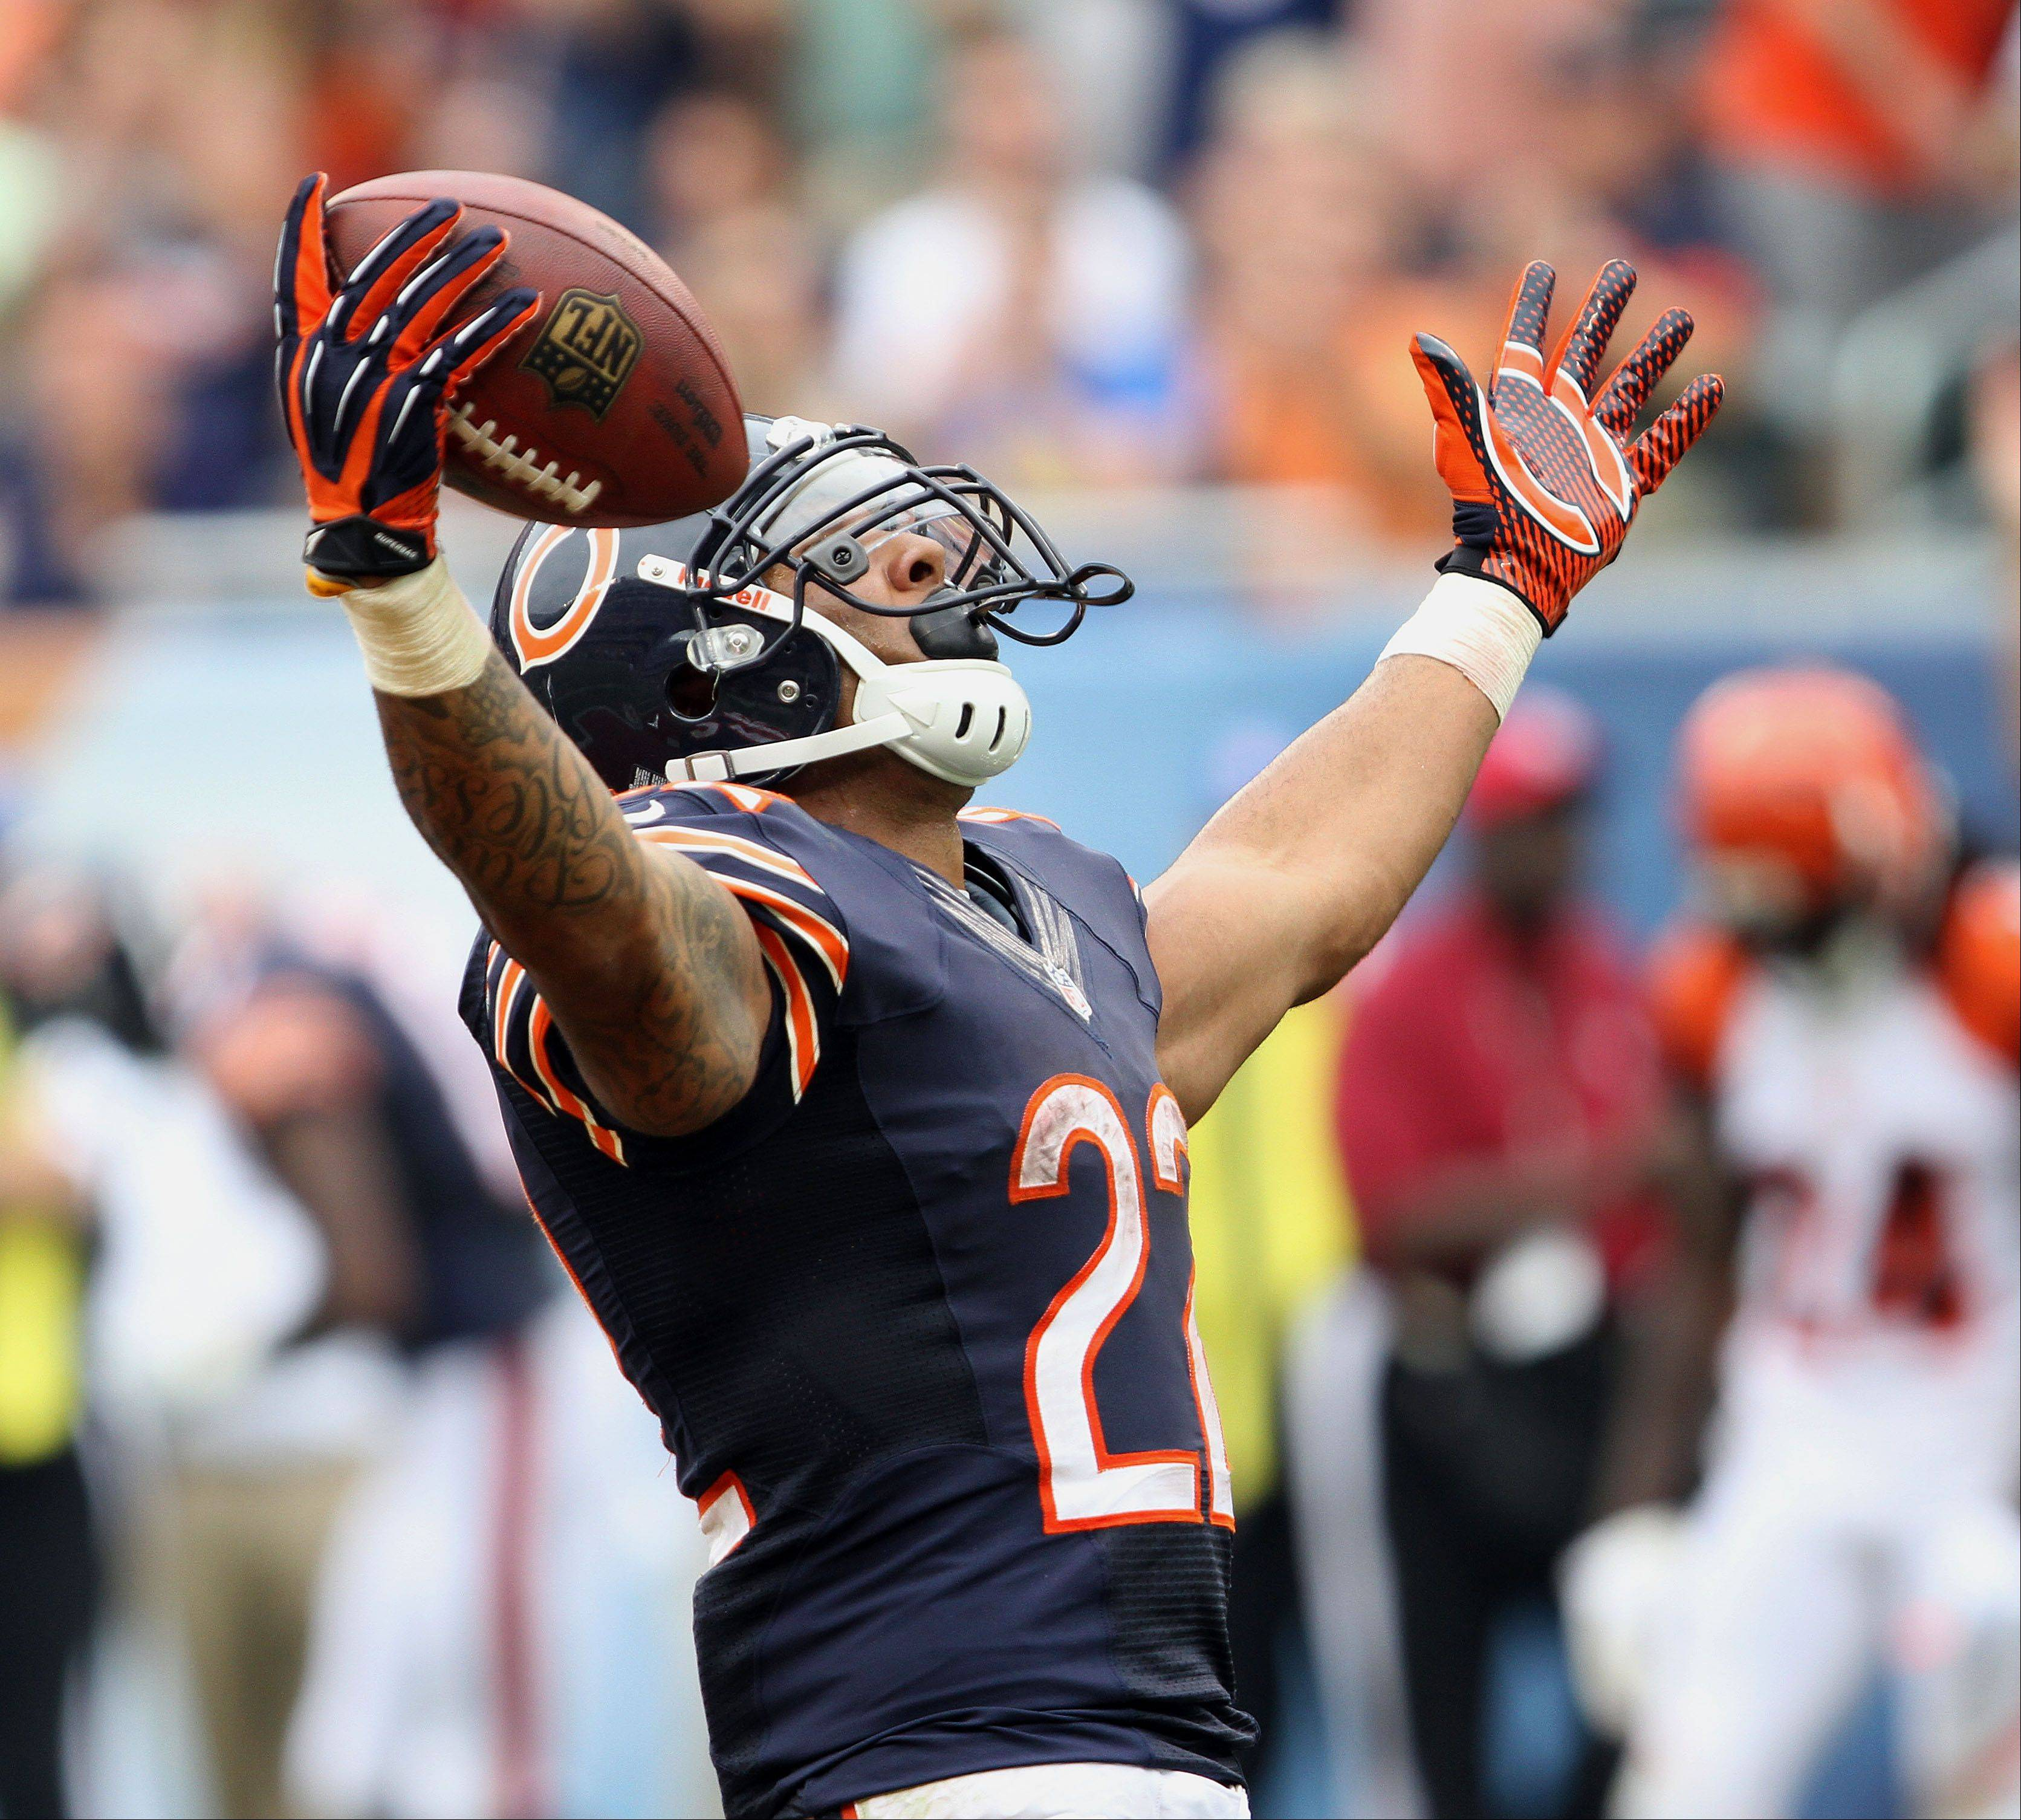 Bears running back Matt Forte celebrates Sunday after his third-quarter touchdown that capped a key 80-yard drive.